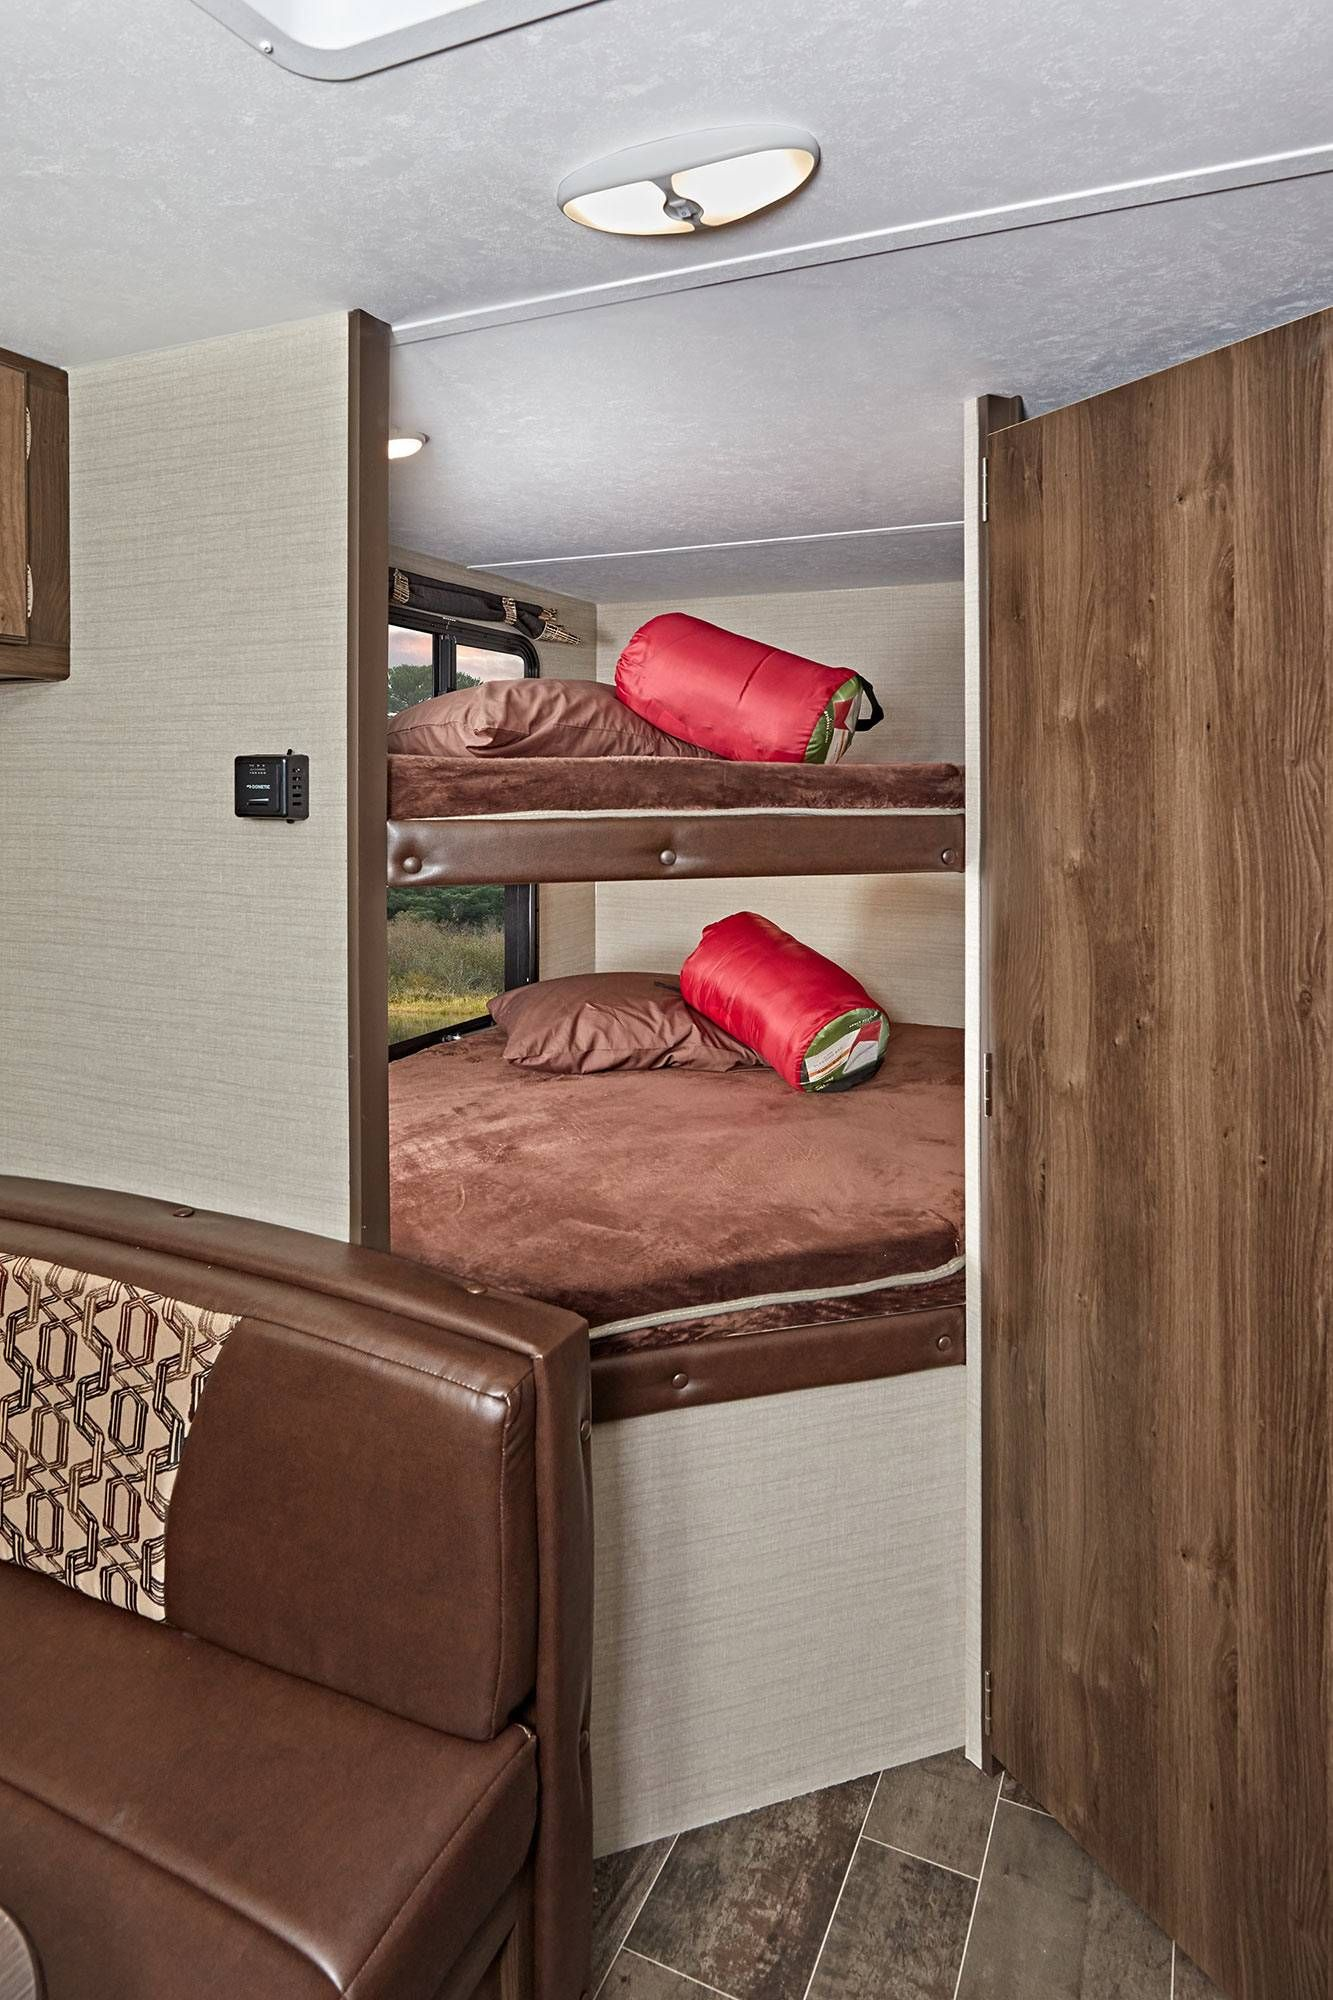 New Fifth Wheel Trailers With Bunk Beds Bedroom Ideas Inspiration